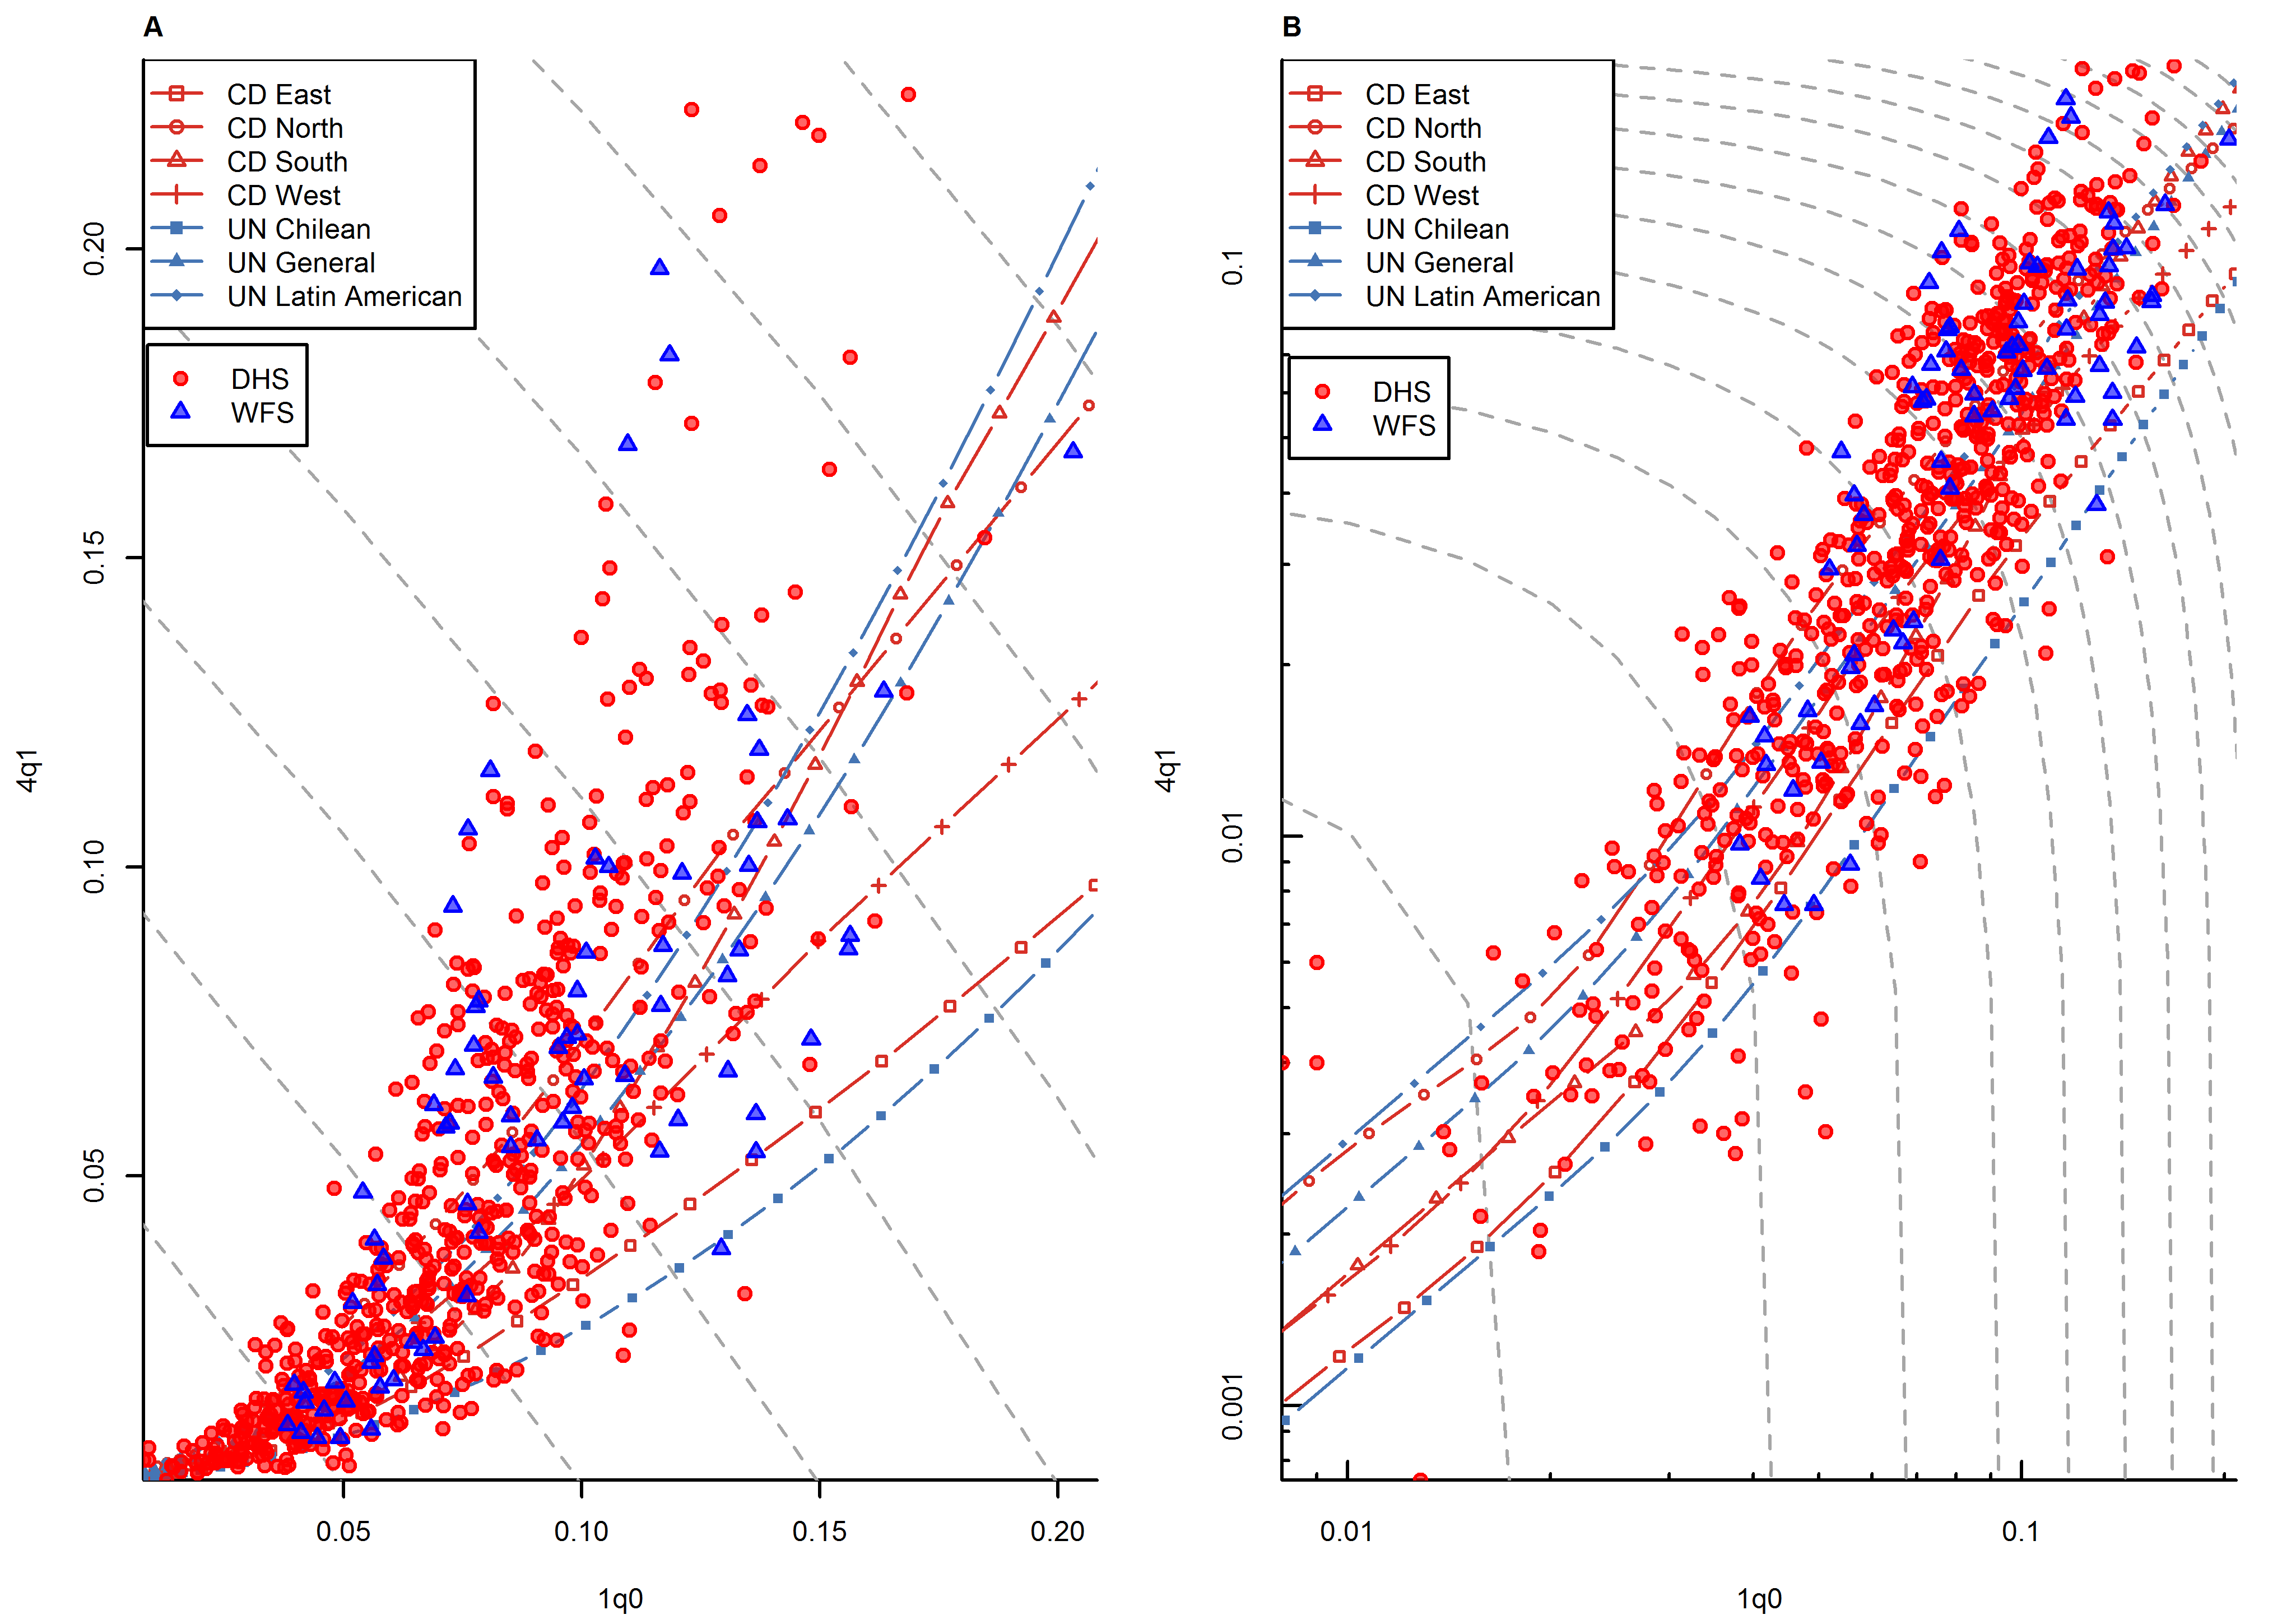 Relationship between <sub>1</sub><i>q</i><sub>0</sub> and <sub>4</sub><i>q</i><sub>1</sub> in country-years of the WFS and DHS surveys: all regions.